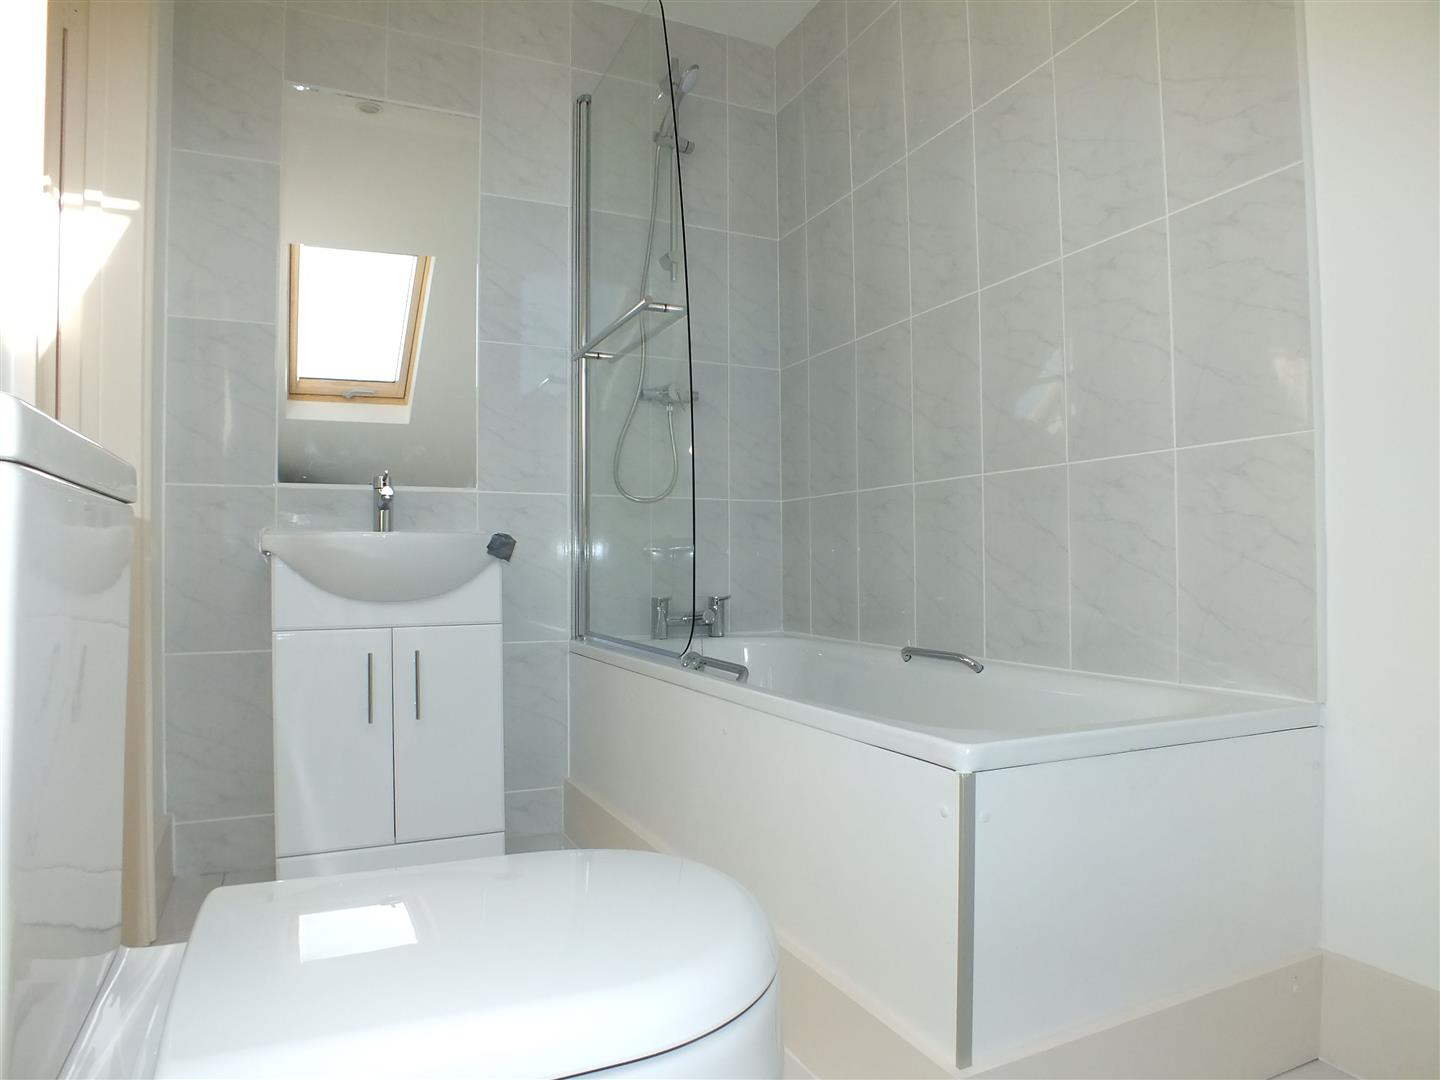 En-Suite Bathroom.jpg